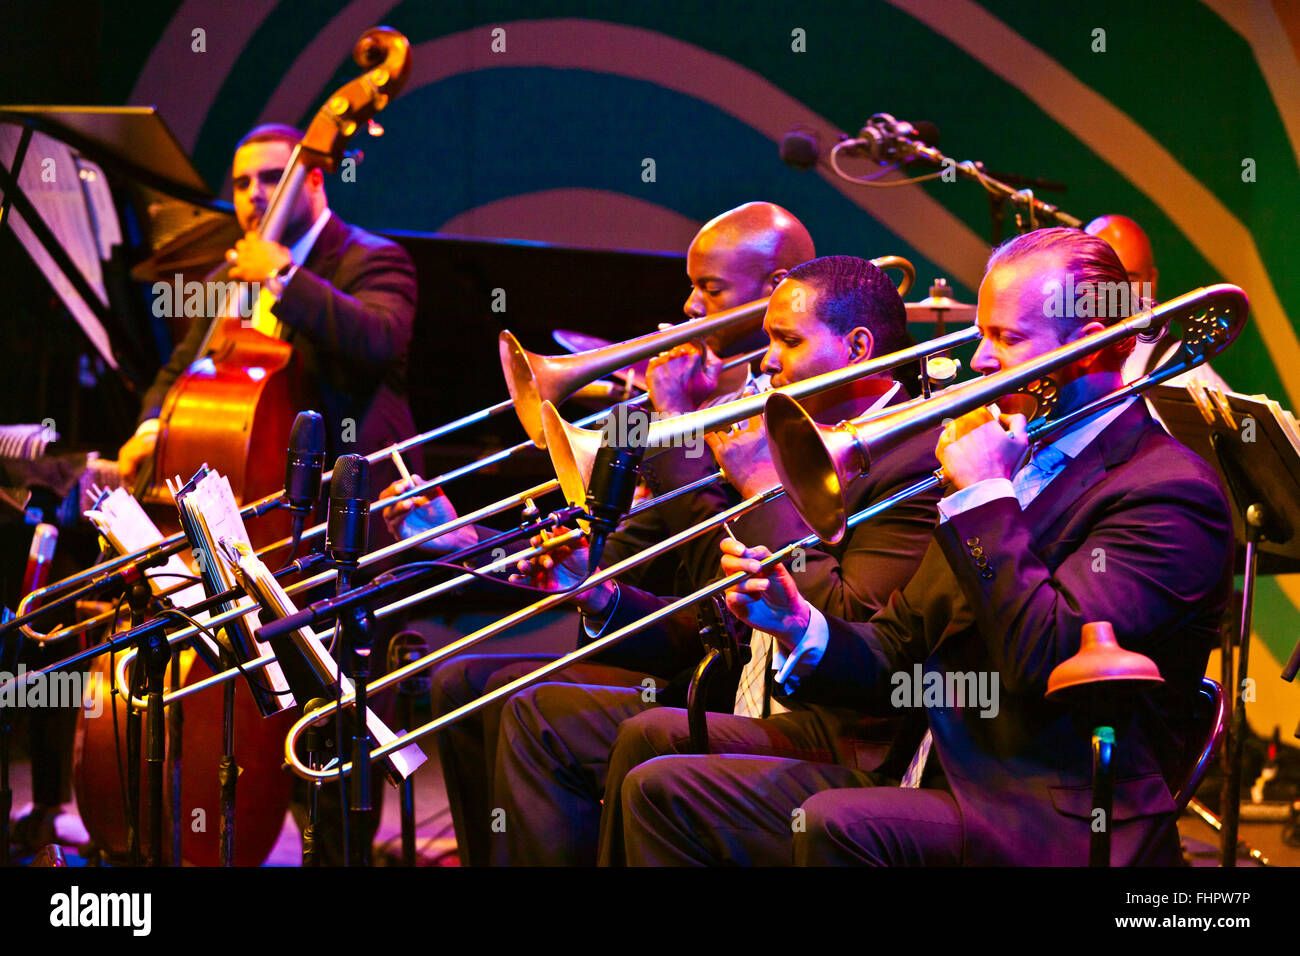 Wynton Marsalis and the Lincoln Center Orchestra perform at the 58th Monterey Jazz Festival - California - Stock Image